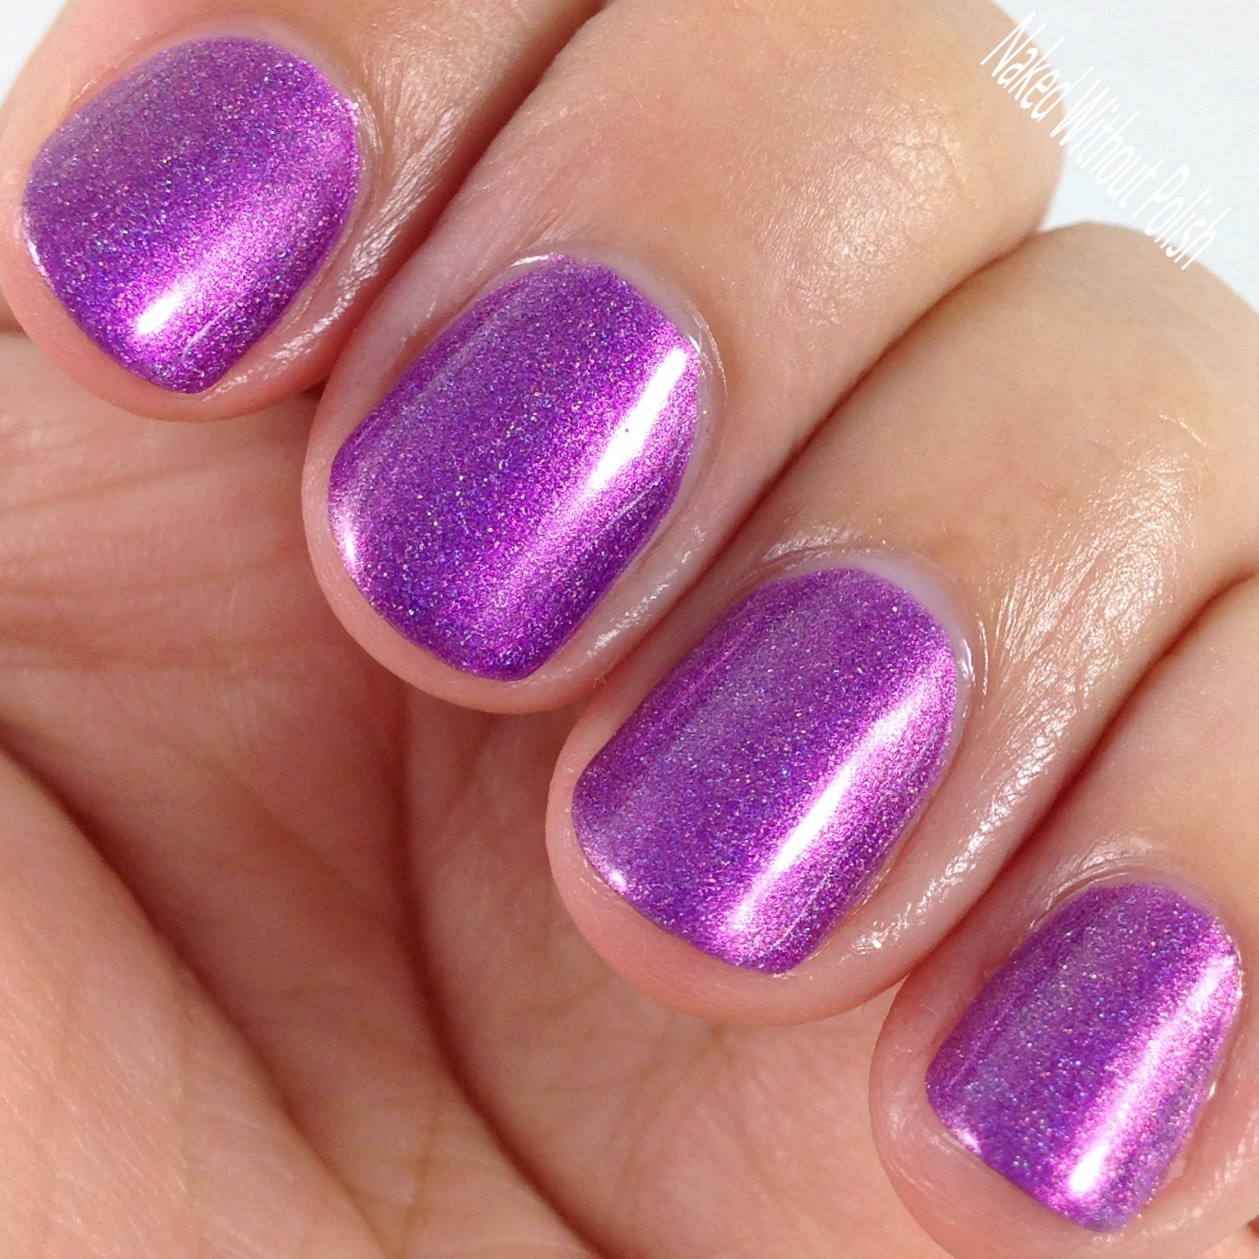 Turtle-Tootsie-Polishes-Hickey-from-Kenickie-8